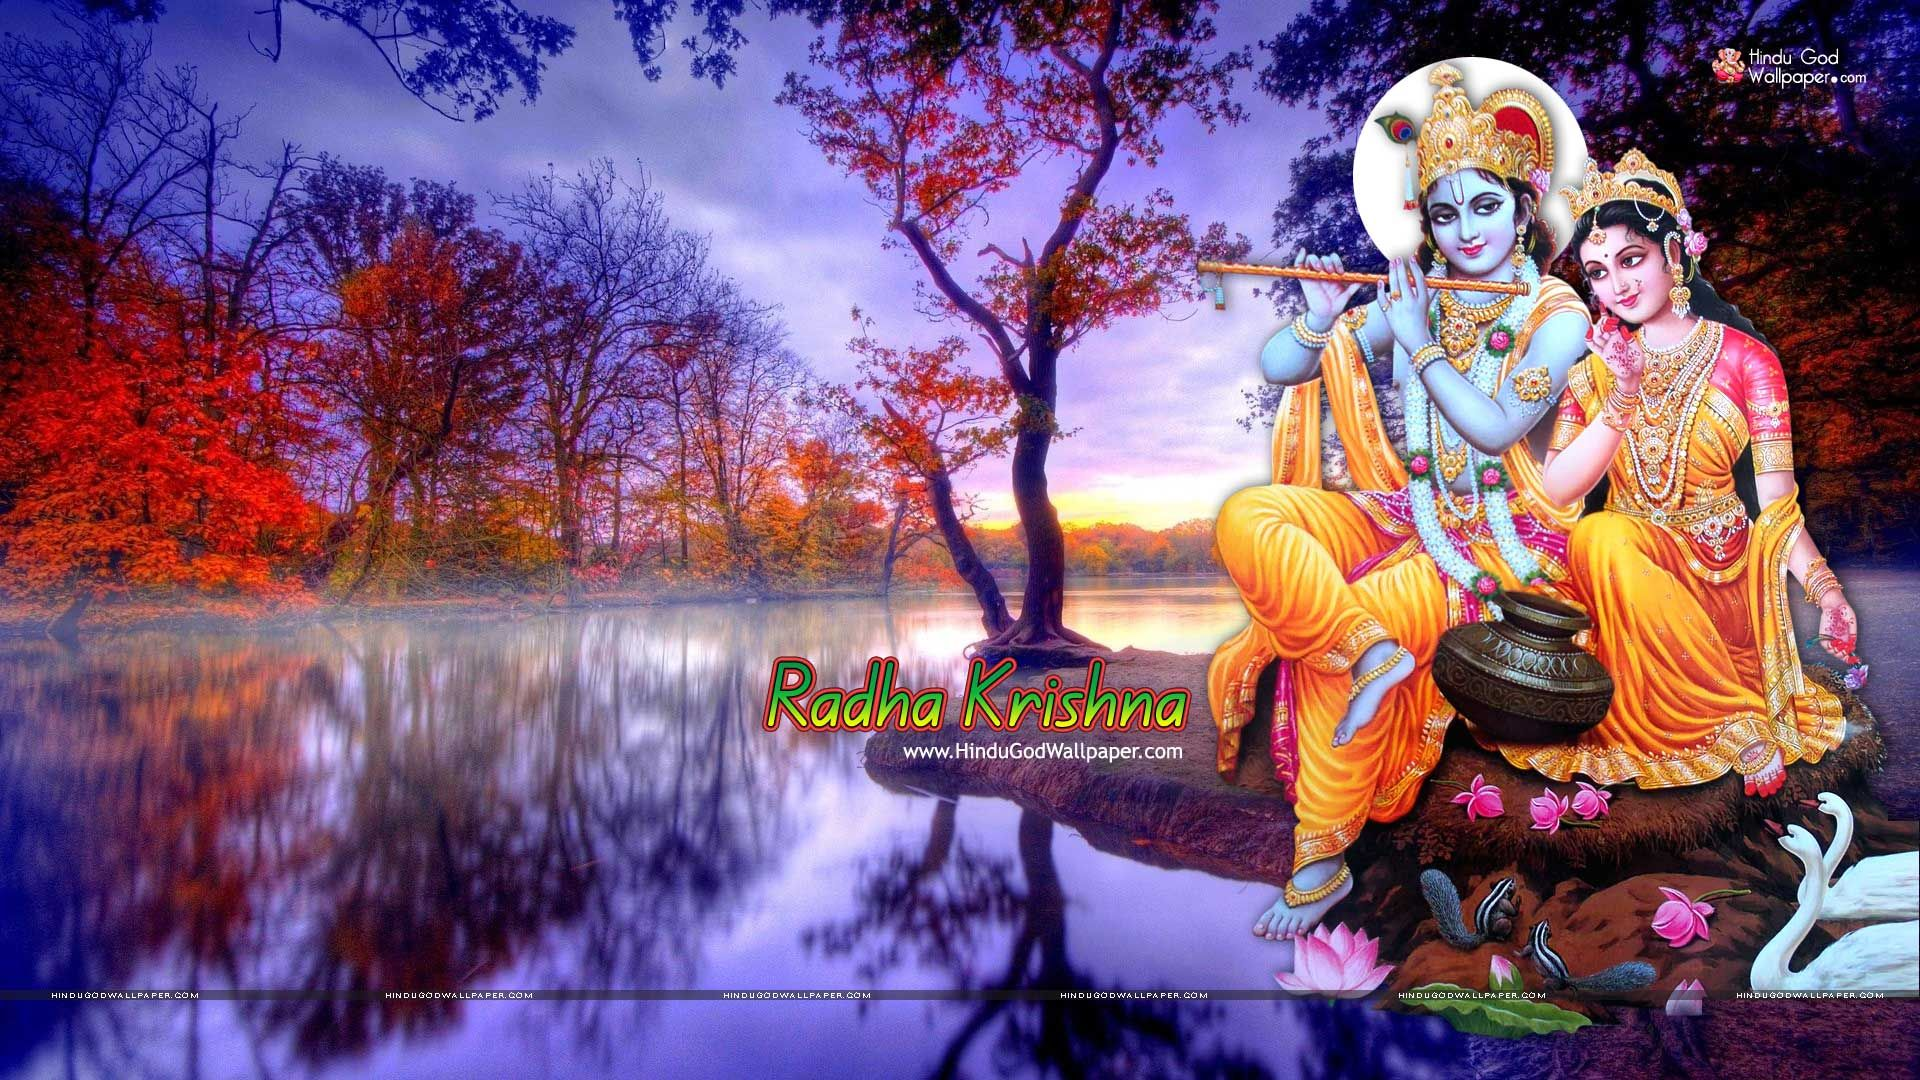 Free Lord Krishna Hd Wallpapers For Desktop Download Krishna Hd Wallpapers Images Photos Lord Krishna Hd Wallpaper Lord Krishna Wallpapers Krishna Wallpaper